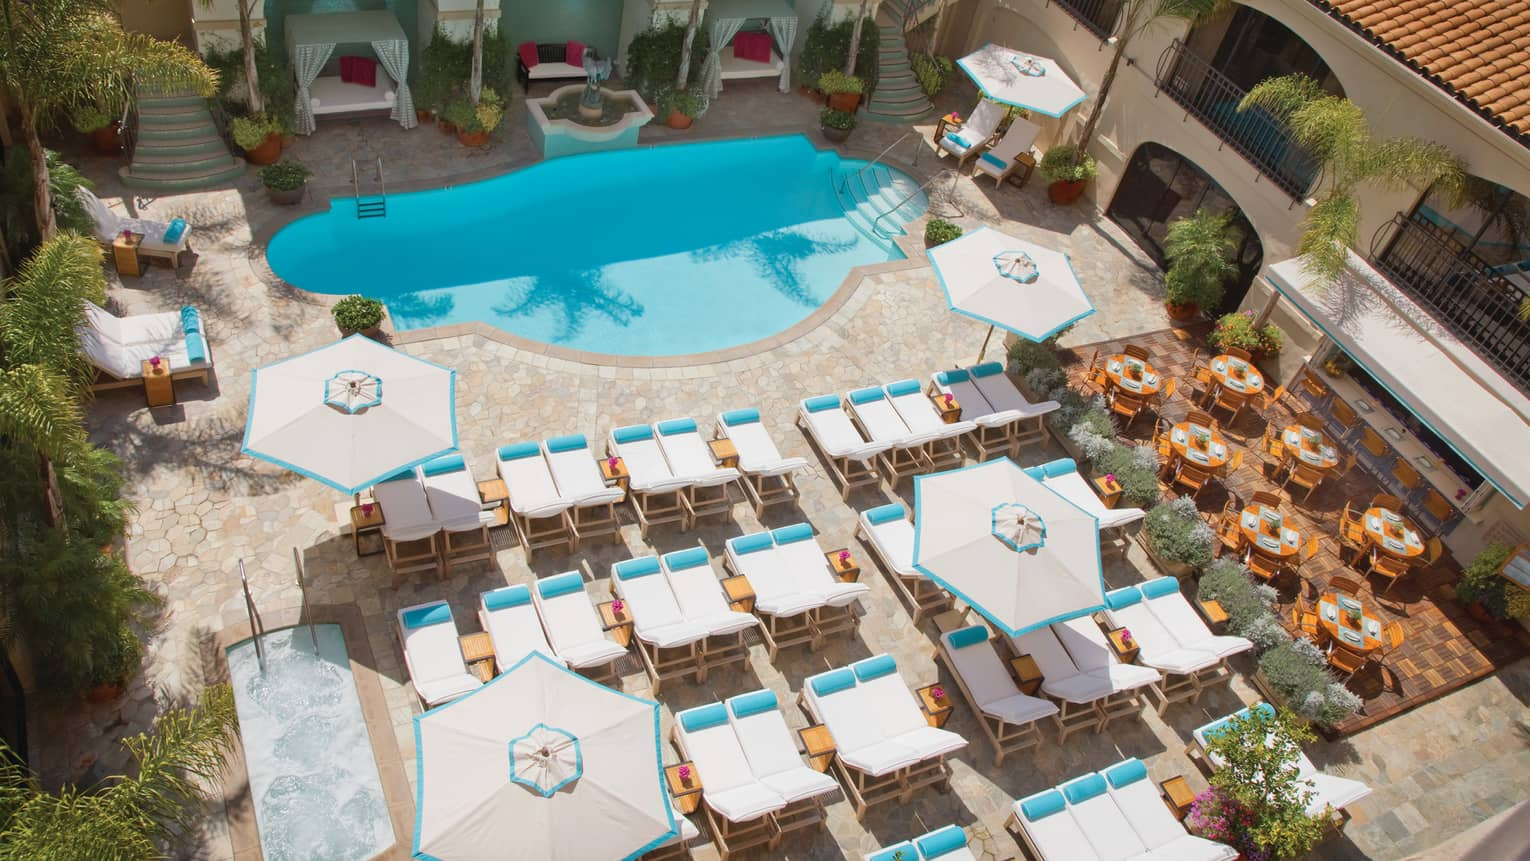 Aerial view of white pool chairs, blue outdoor swimming pool